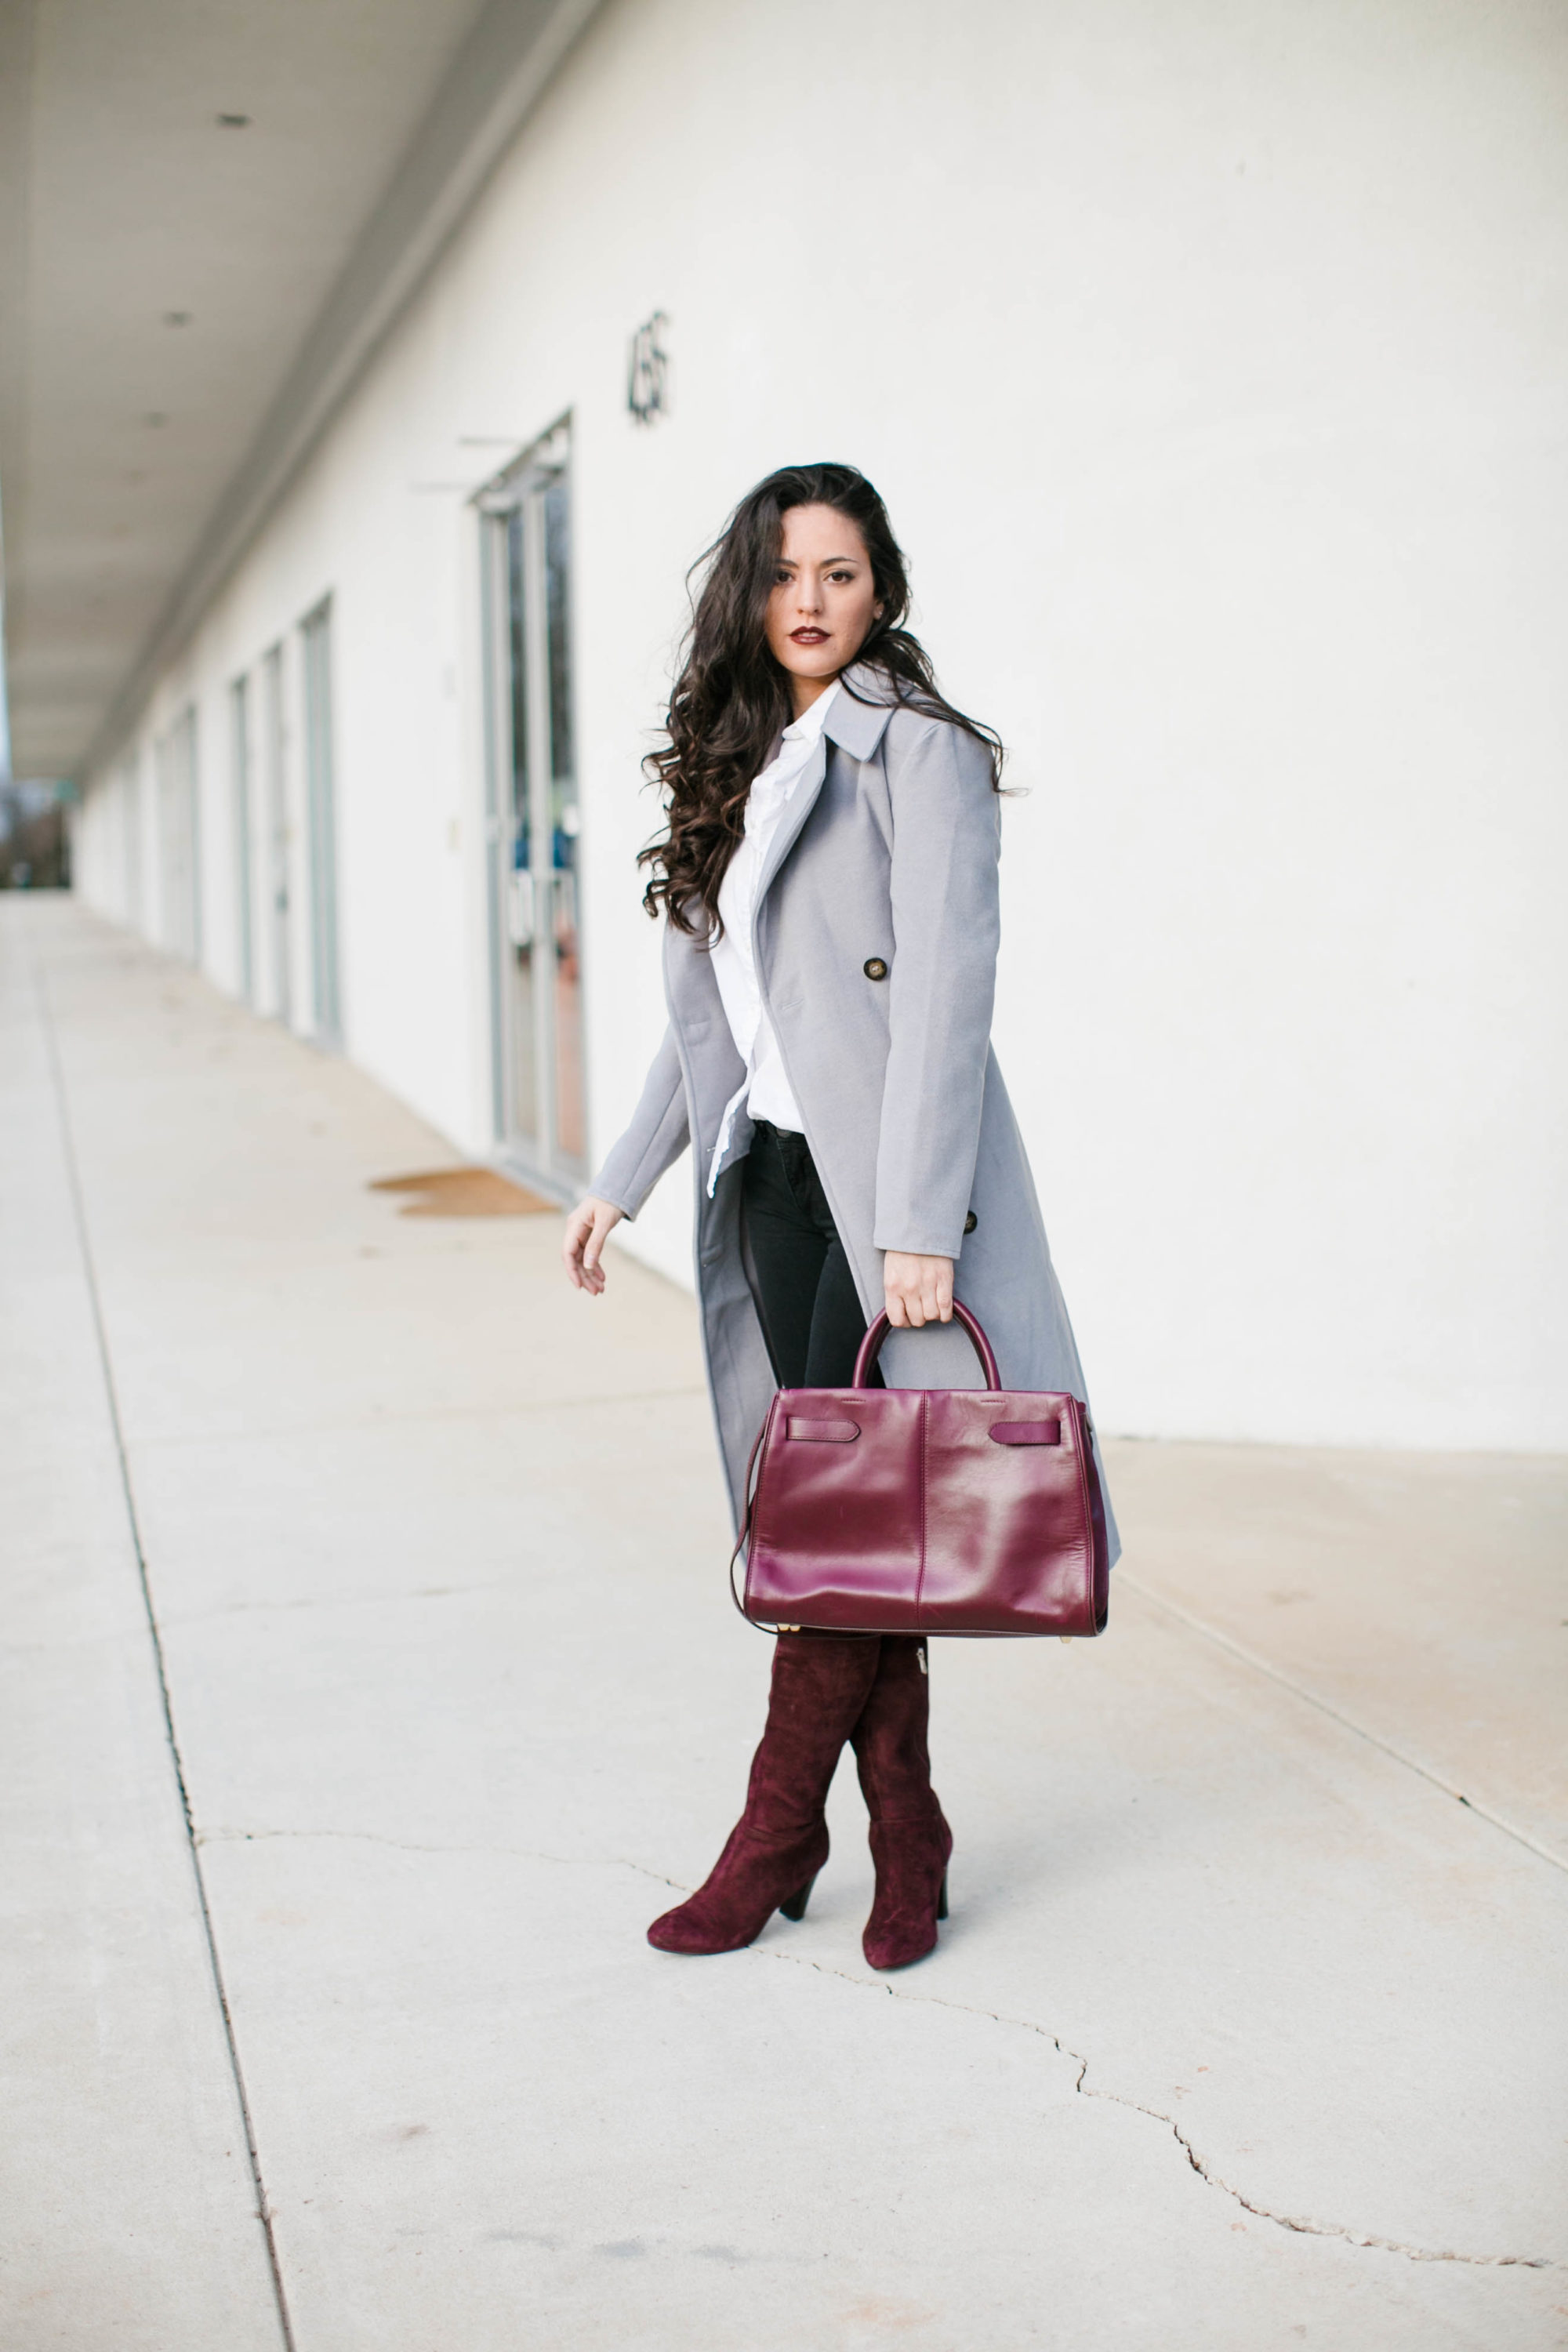 wine otk boots, wine over the knee boots, wearing color in the winter, wine winter wardrobe, grey winter coat, merlot lip color